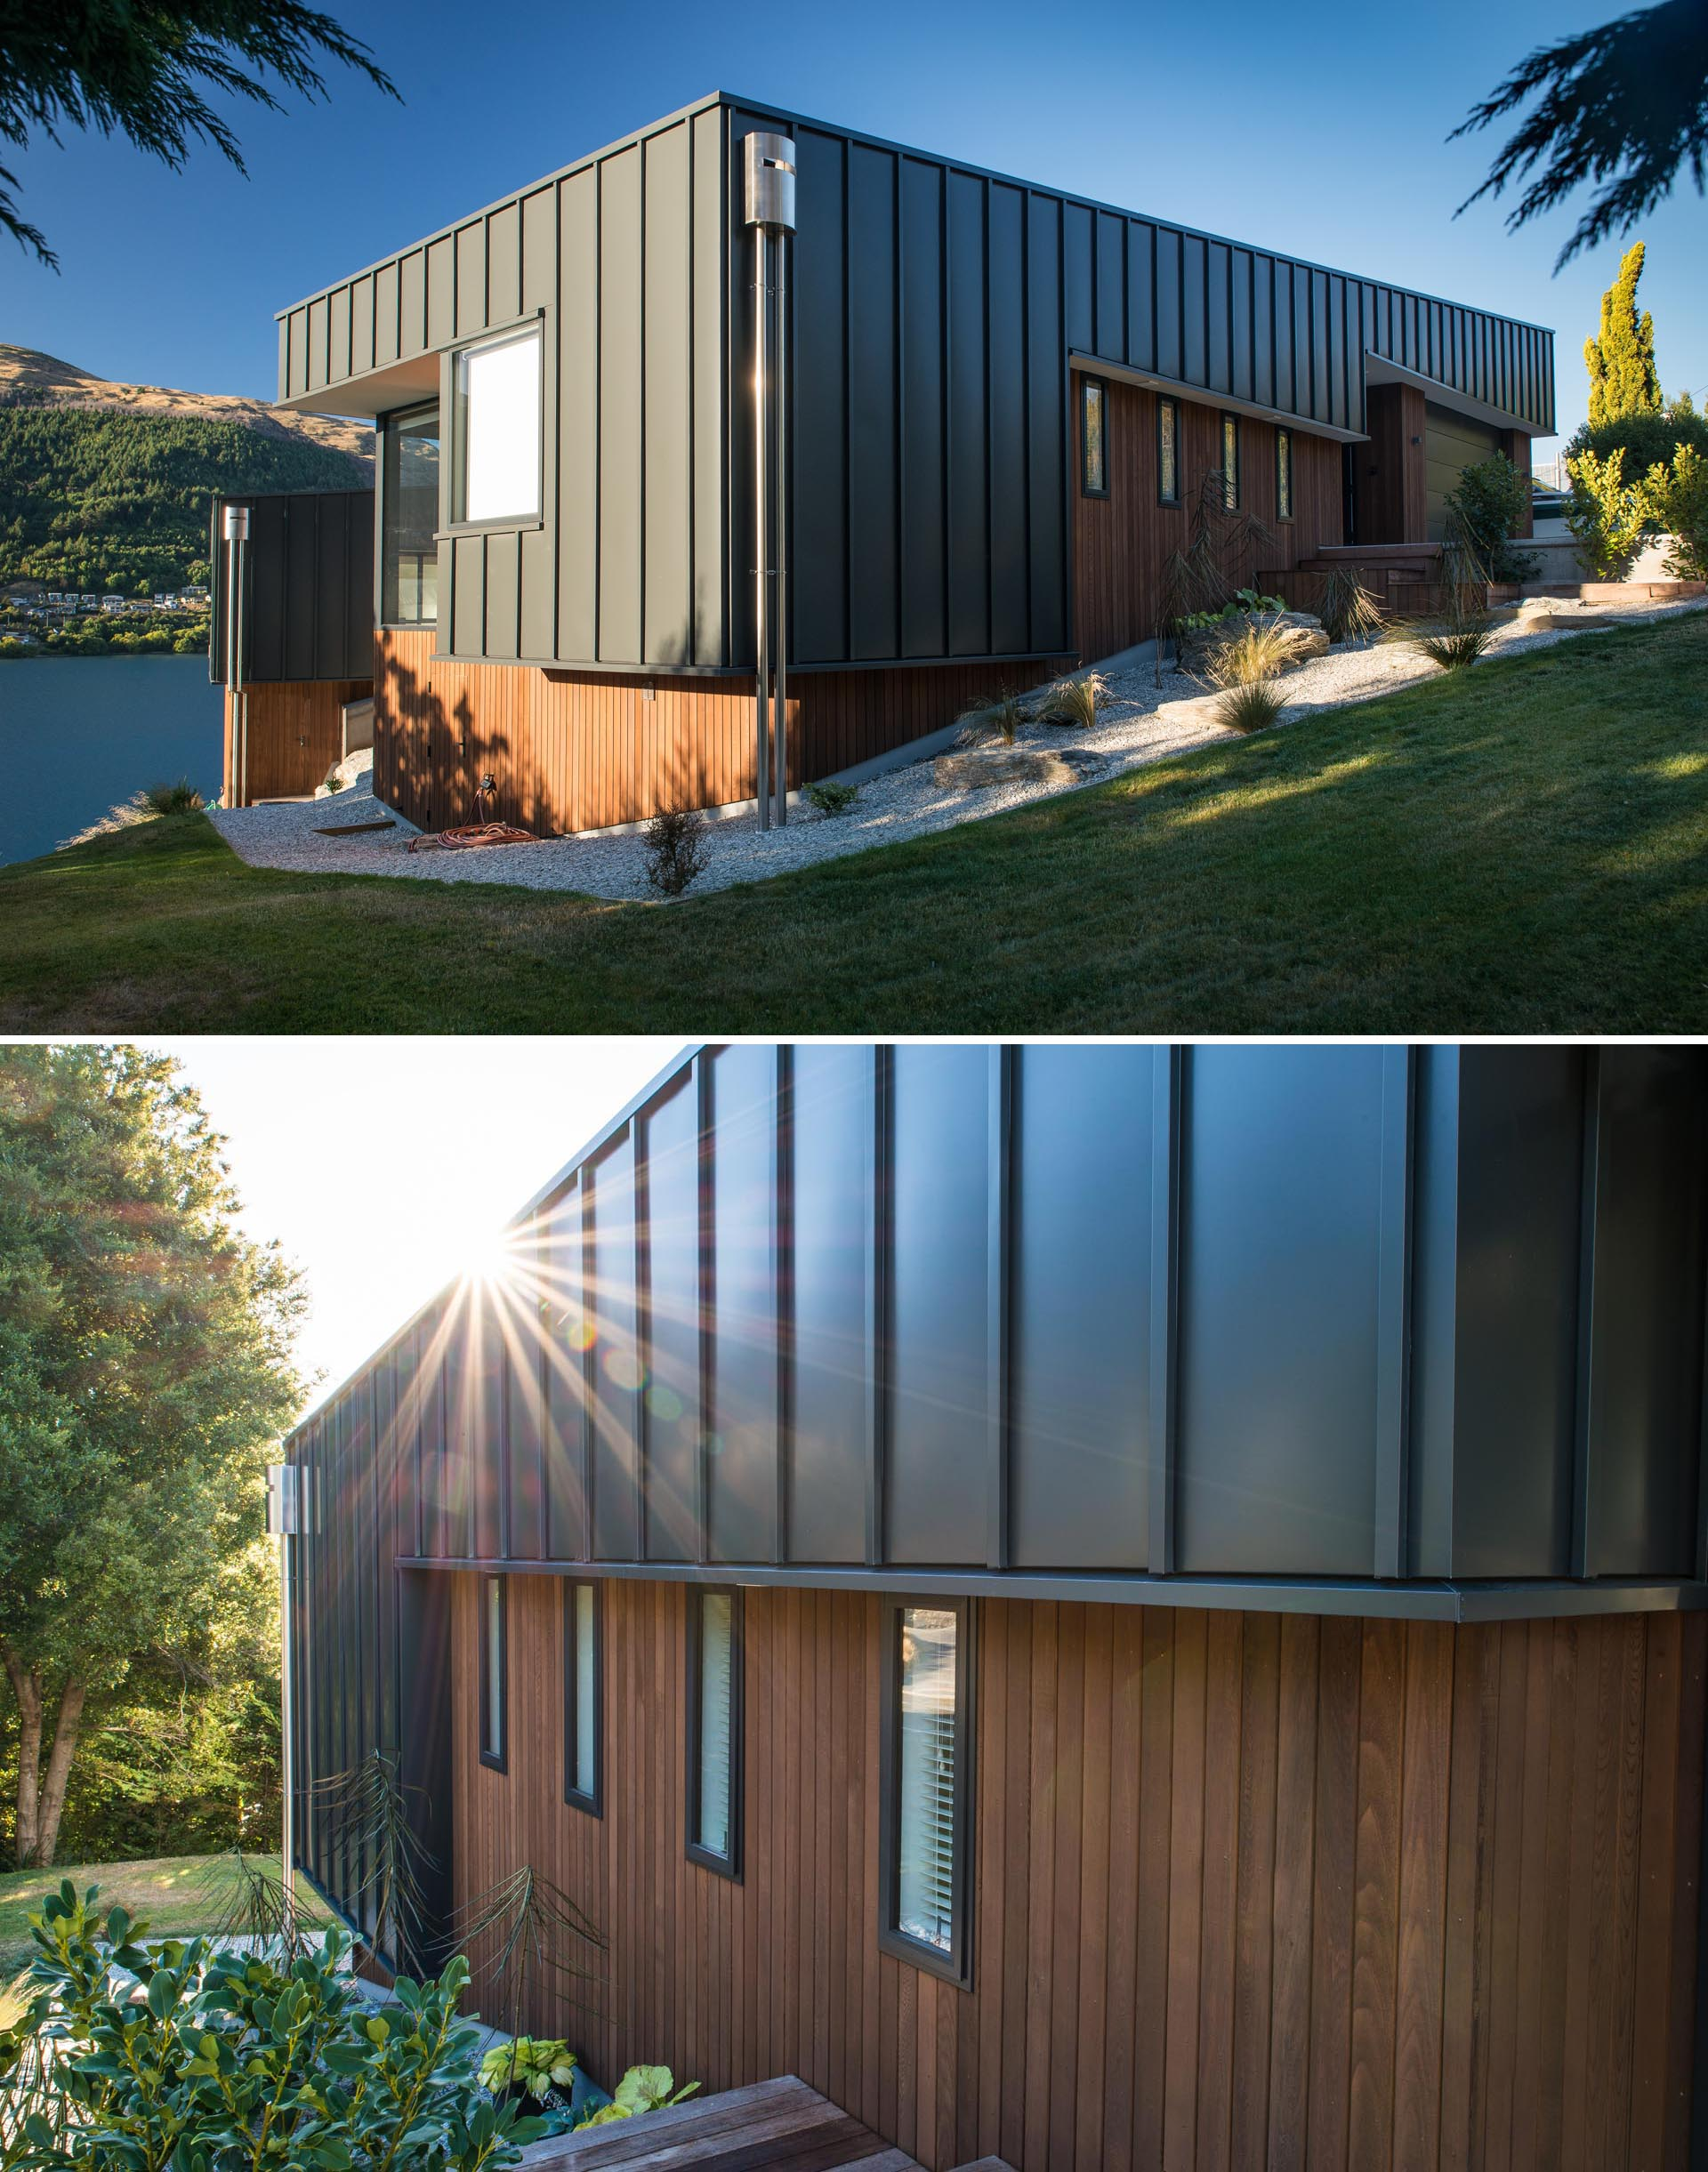 A modern house with matte black metal siding and wood accents.